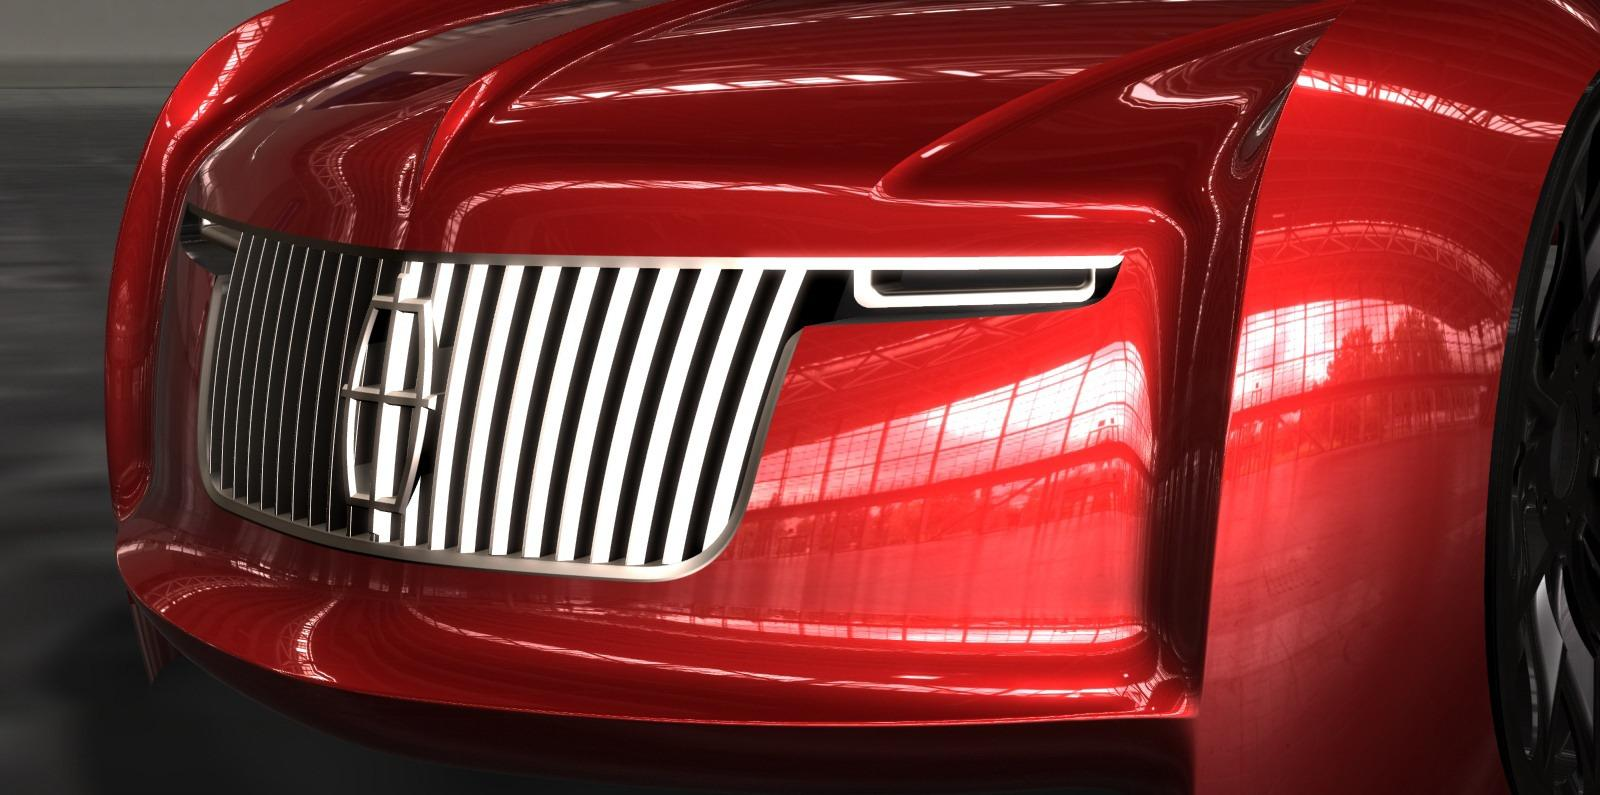 2025 Lincoln Continental EV 3 Will the 2025 Lincoln Continental EV student project be a reality?